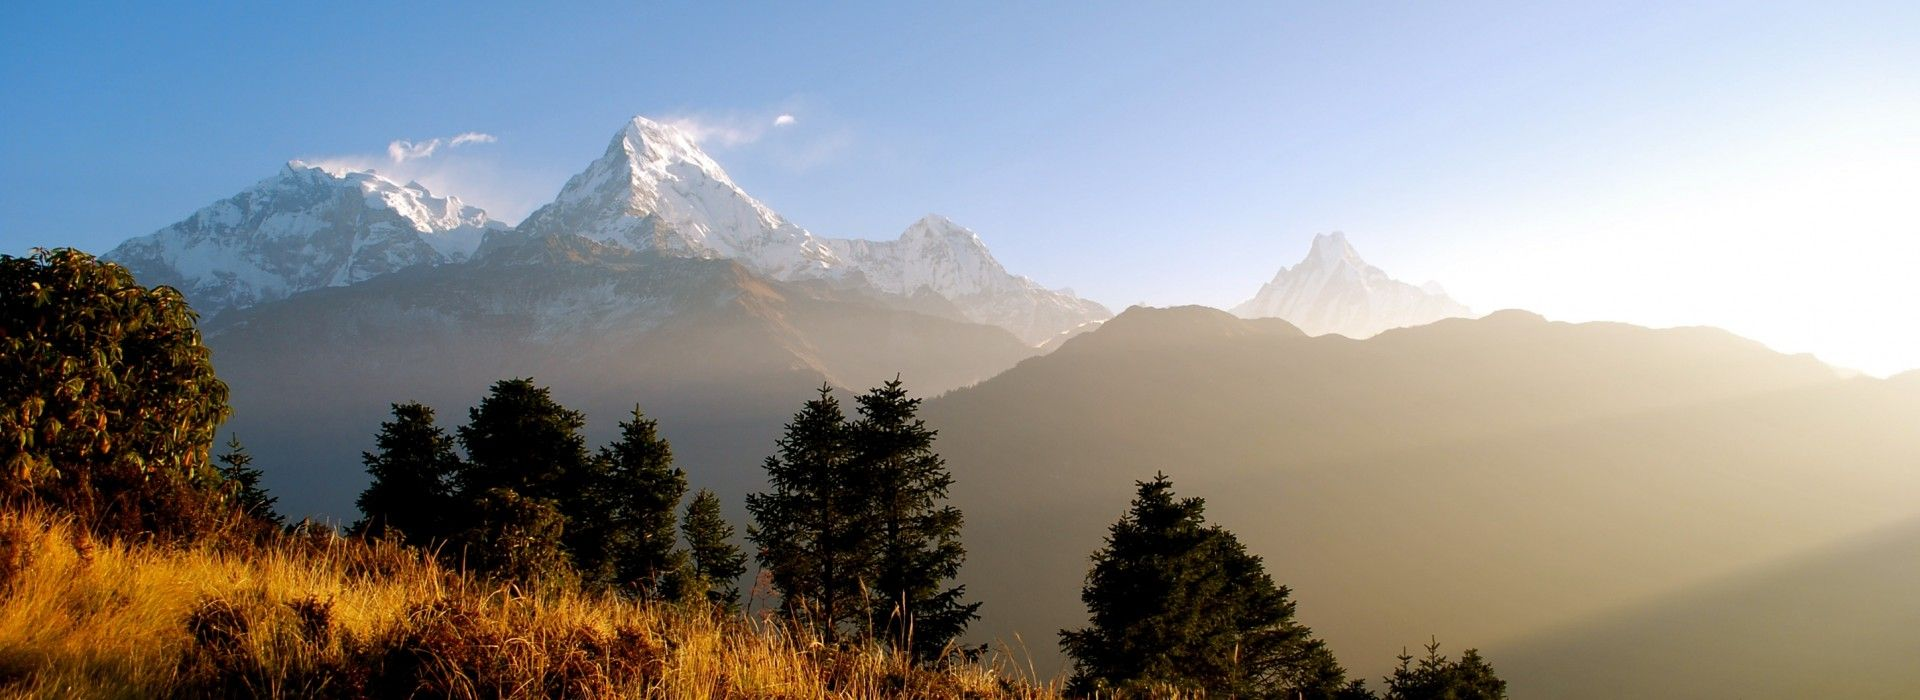 Adventure and sport Tours in Everest Base Camp - 3 Passes trek